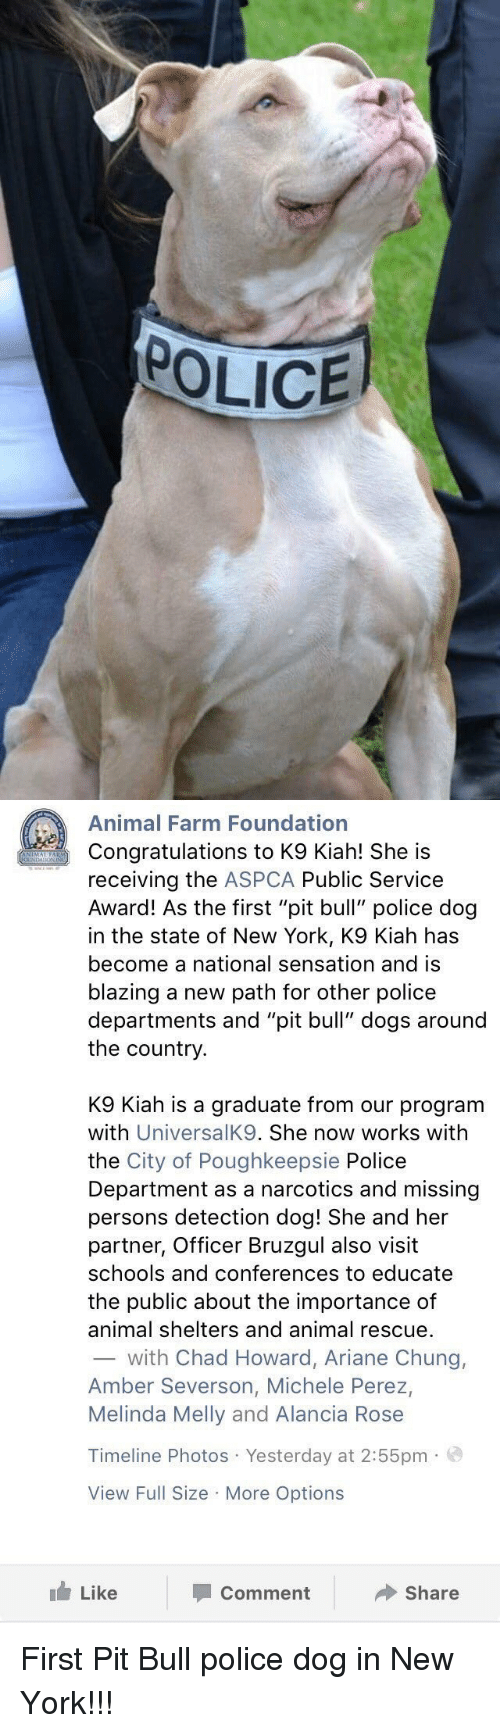 "Aspca: POLICE   Animal Farm Foundation  Congratulations to K9 Kiah! She is  receiving the  ASPCA Public Service  Award! As the first ""pit bull"" police dog  in the state of New York, K9 Kiah has  become a national sensation and is  blazing a new path for other police  departments and ""pit bull"" dogs around  the country  K9 Kiah is a graduate from our program  with  UniversalK9. She now works with  the City of Poughkeepsie Police  Department as a narcotics and missing  persons detection dog! She and her  partner, Officer Bruzgul also visit  schools and conferences to educate  the public about the importance of  animal shelters and animal rescue.  with Chad Howard, Ariane Chung,  Amber Severson, Michele Perez,  Melinda Melly and Alancia Rose  Timeline Photos Yesterday at 2:55pm.  View Full Size More Options  Like  Share  Comment First Pit Bull police dog in New York!!!"